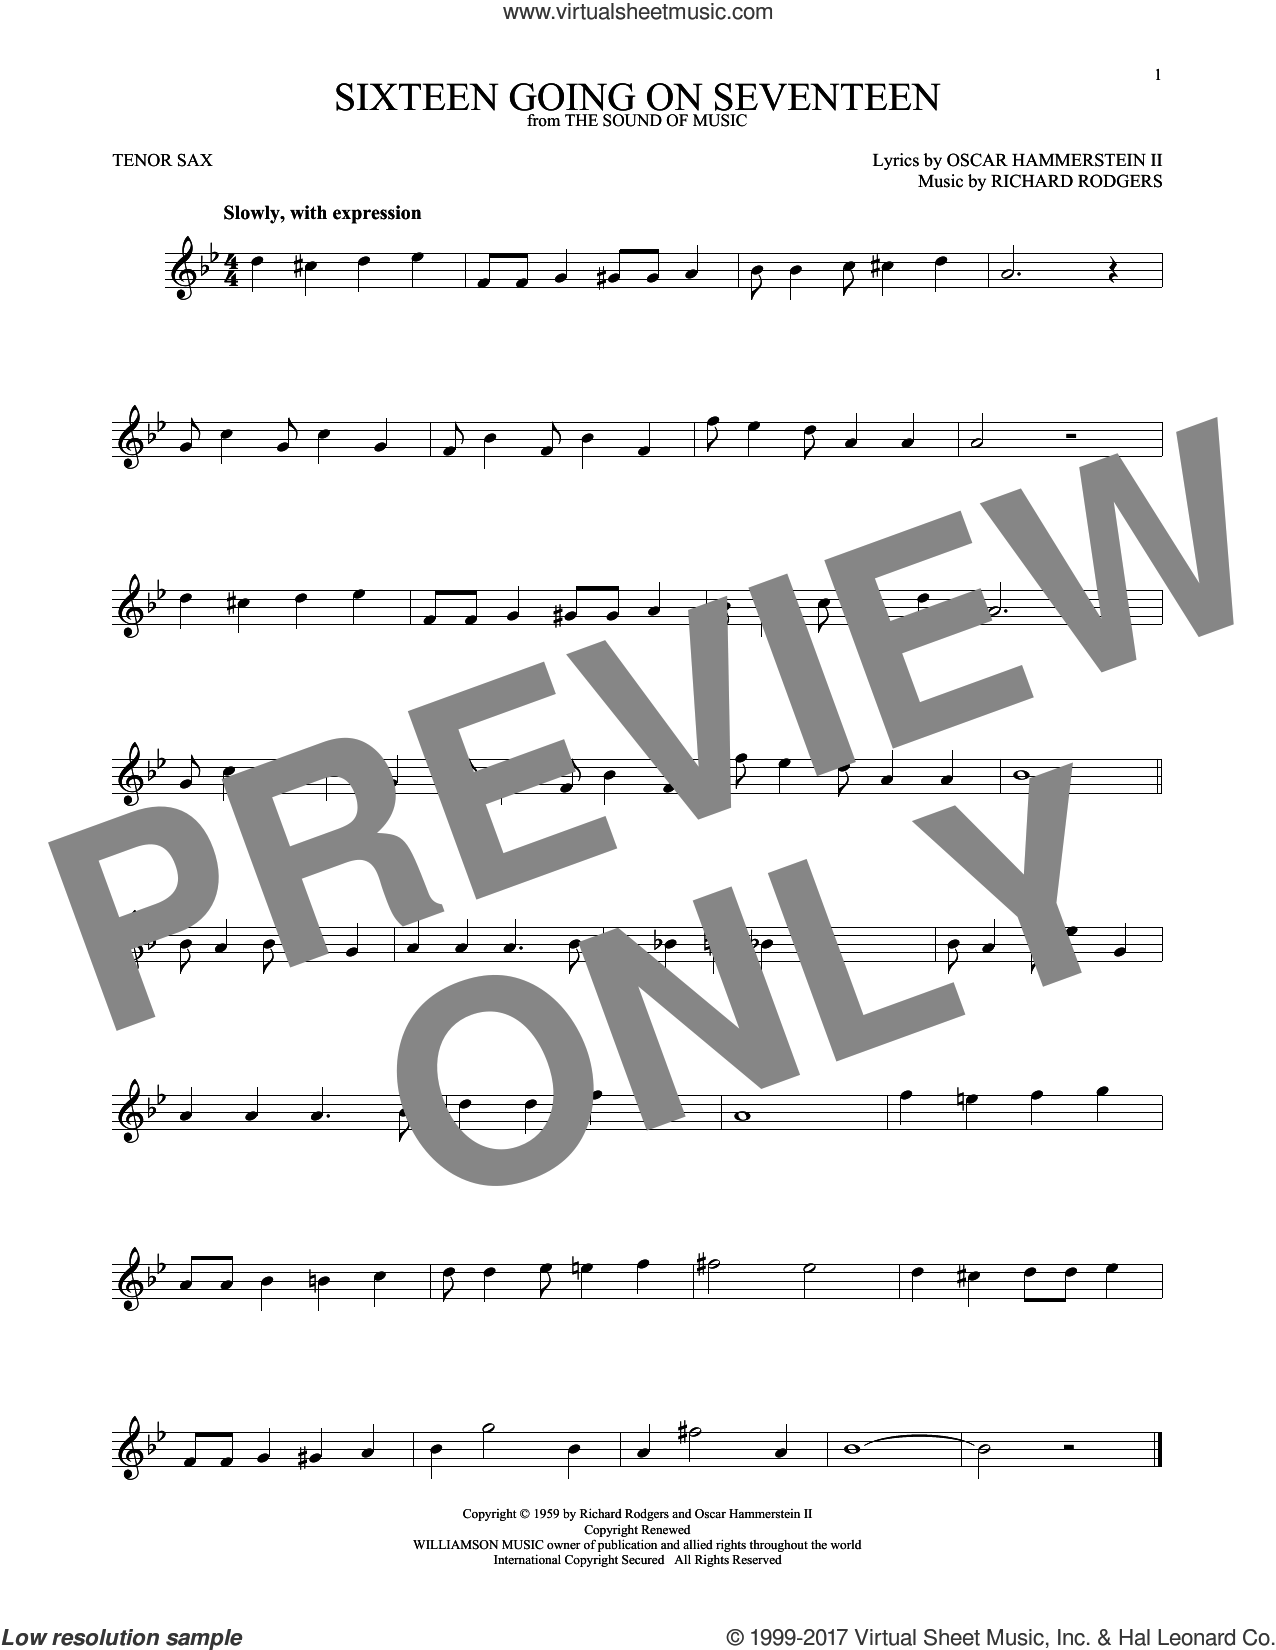 Sixteen Going On Seventeen sheet music for tenor saxophone solo by Rodgers & Hammerstein, Oscar II Hammerstein and Richard Rodgers, intermediate skill level